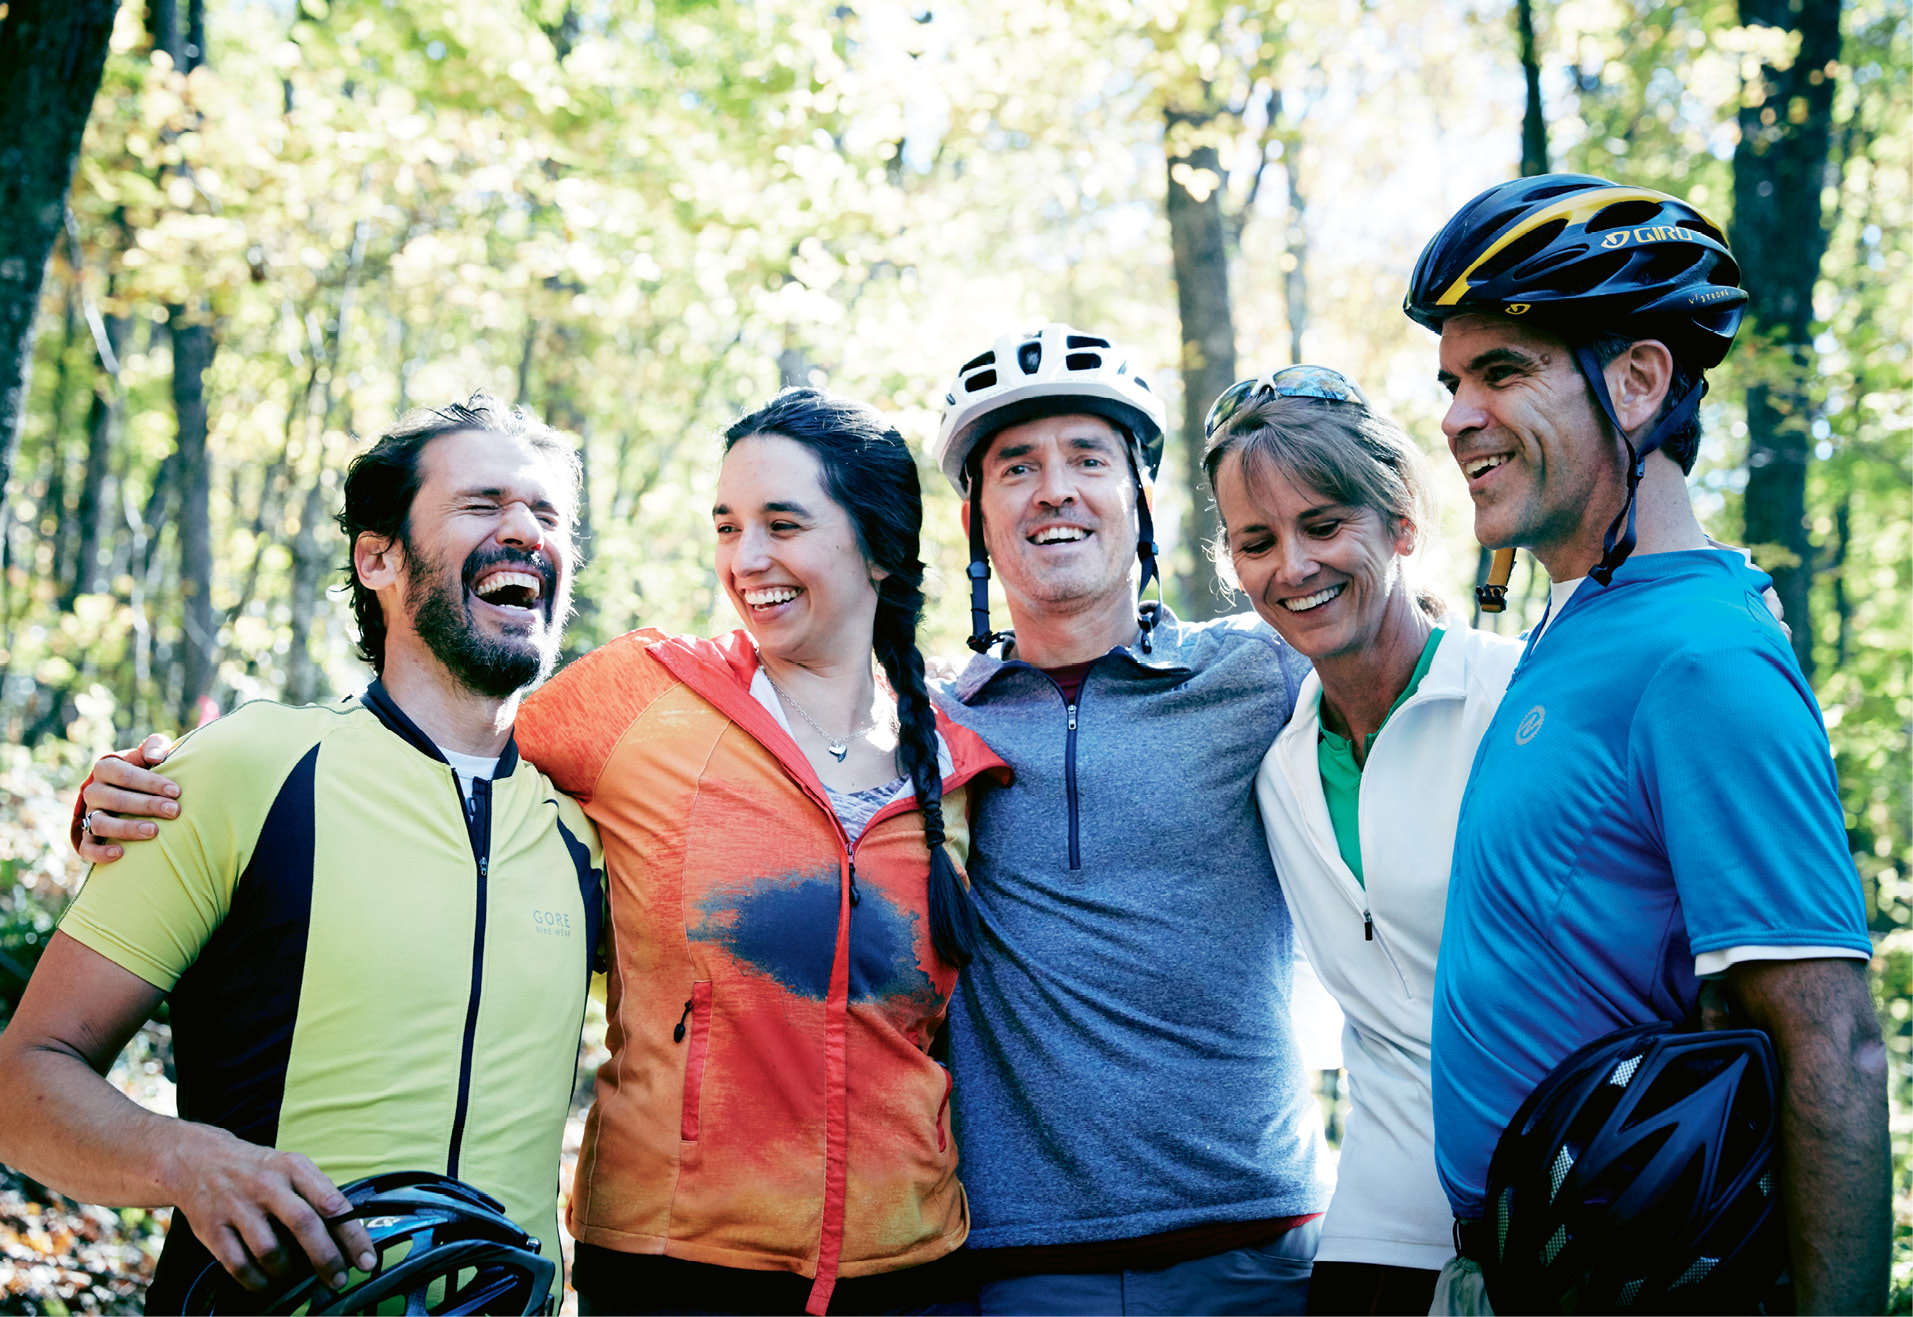 (Above left to right) John Duckworth, Gloria Wilson, Robert Prioleau, and Stephanie and Noel Hunt share laughs and trail talk while taking a break from exploring the REEB Ranch mountain biking wonderland.